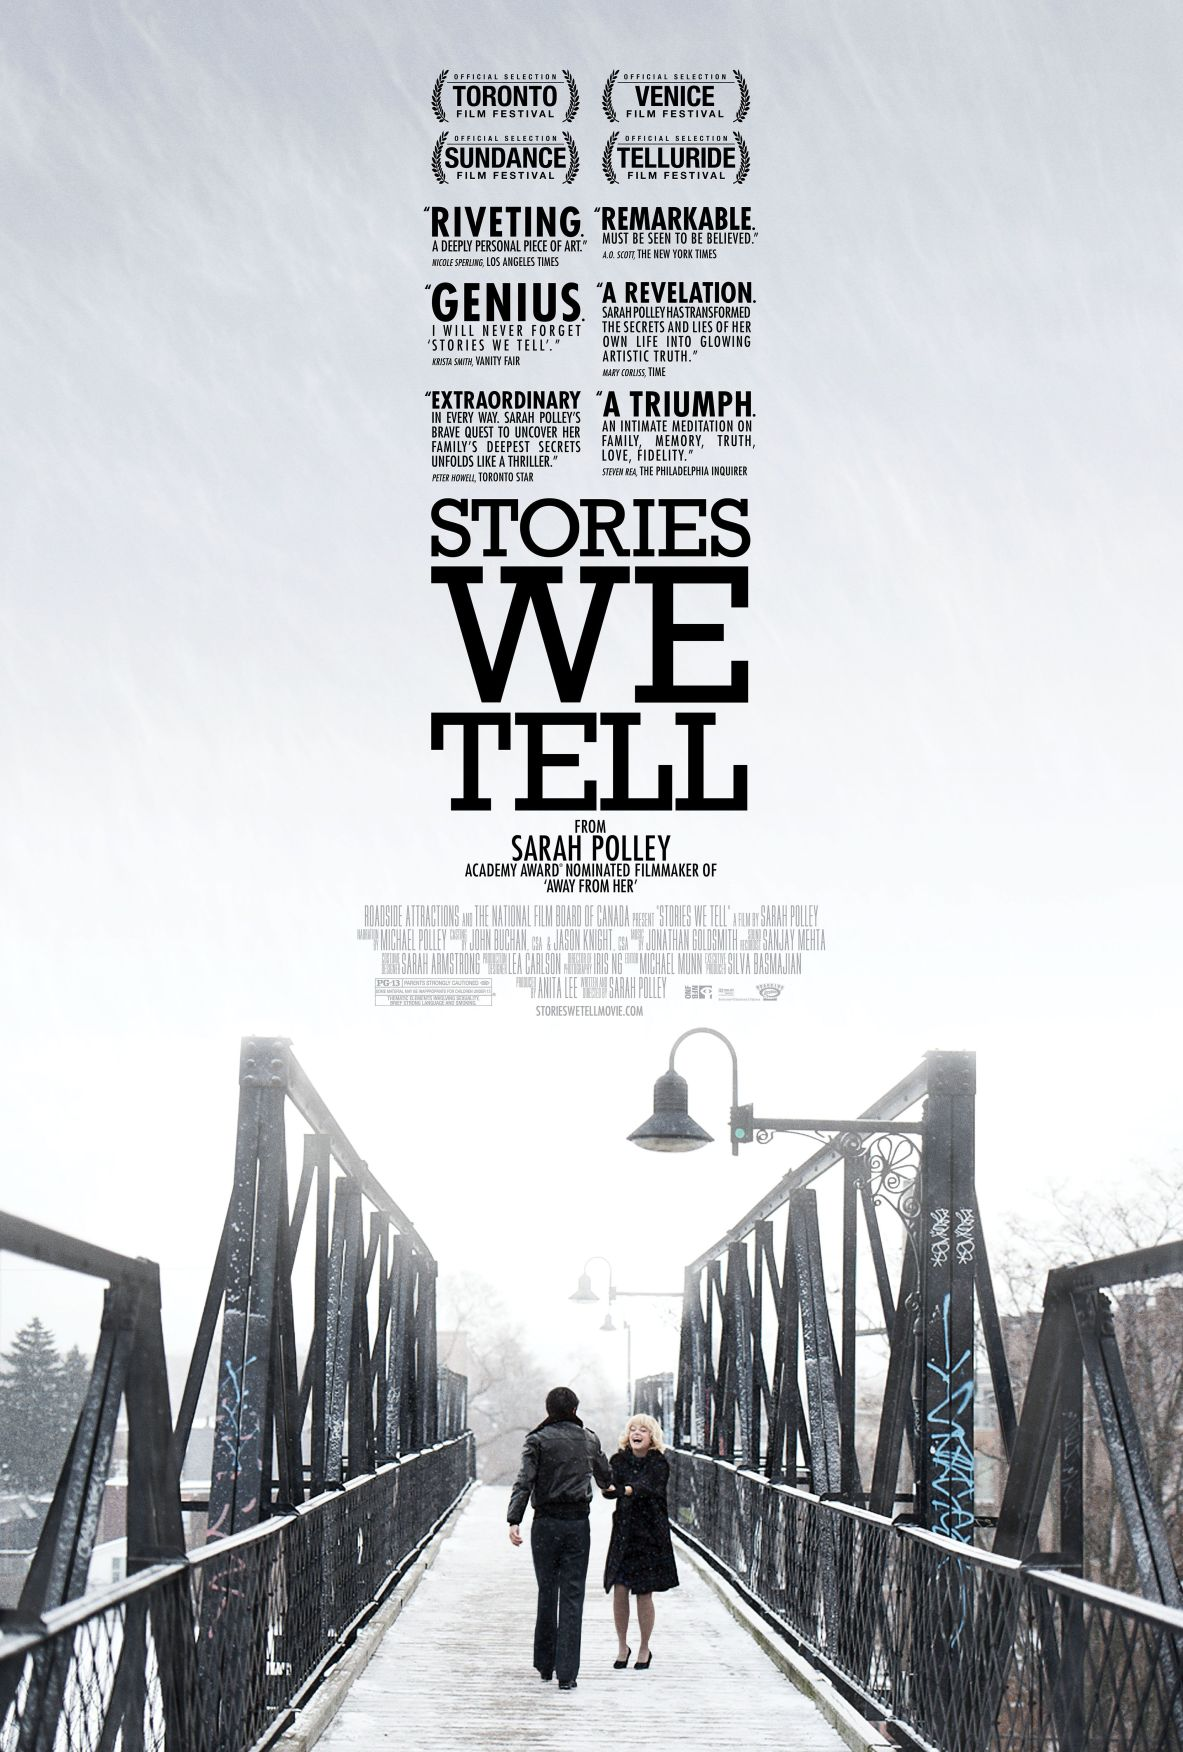 'Stories We Tell' explores layers of myth, memory